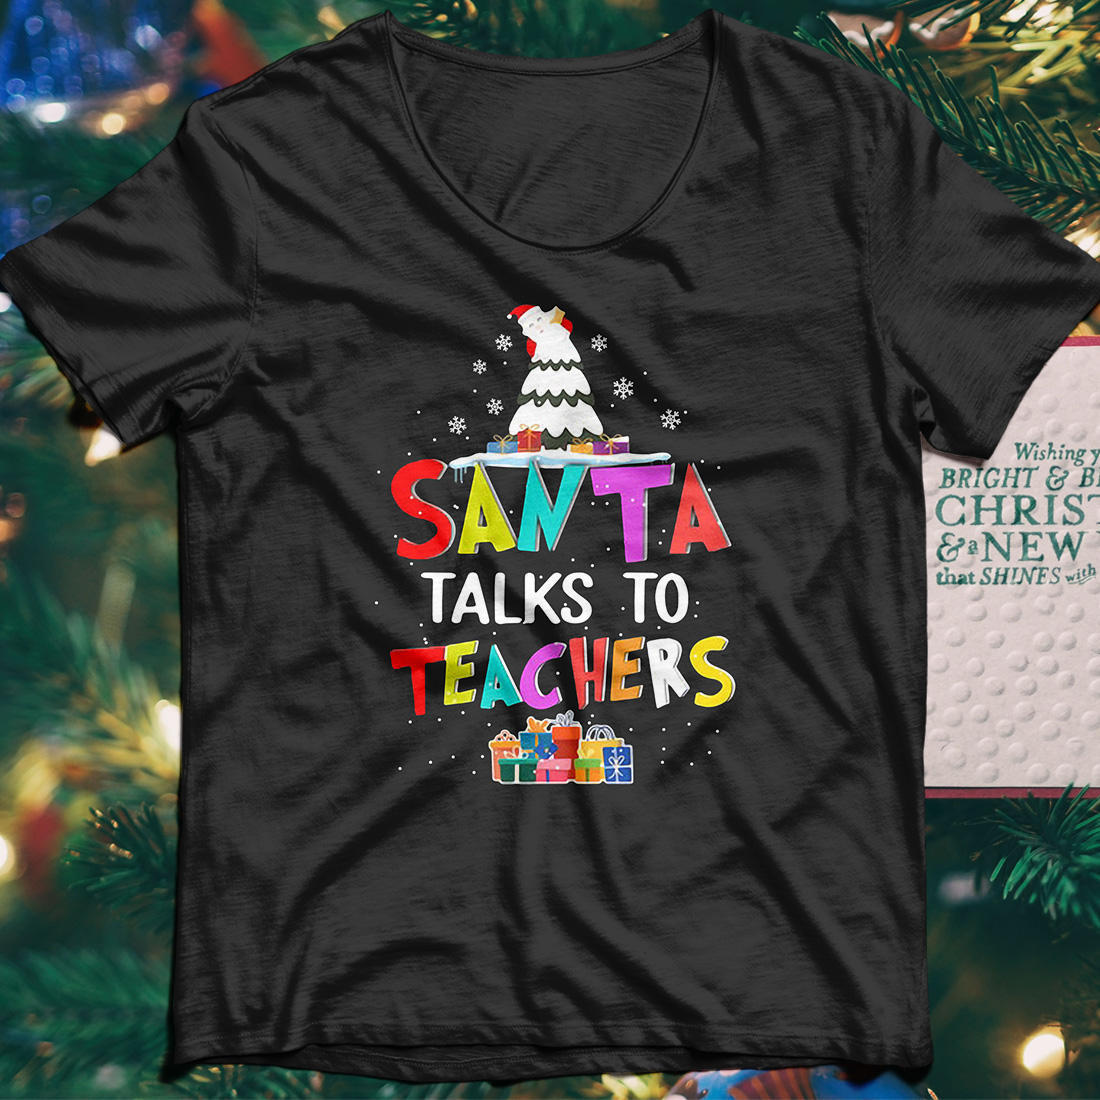 Christmas Santa talks to teachers shirt